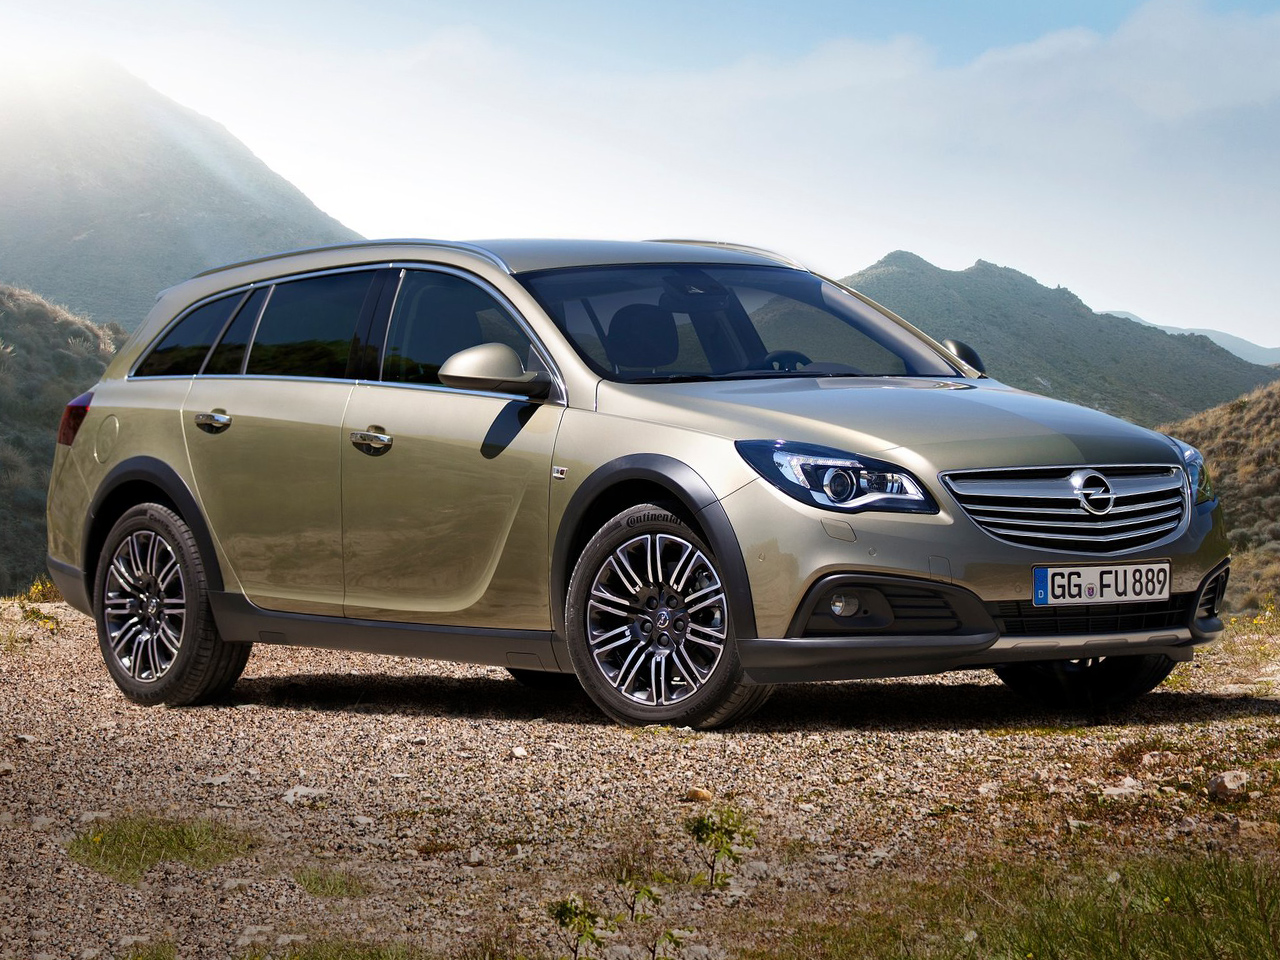 opel insignia country tourer 2013 2 0 cdti 170cv awd. Black Bedroom Furniture Sets. Home Design Ideas